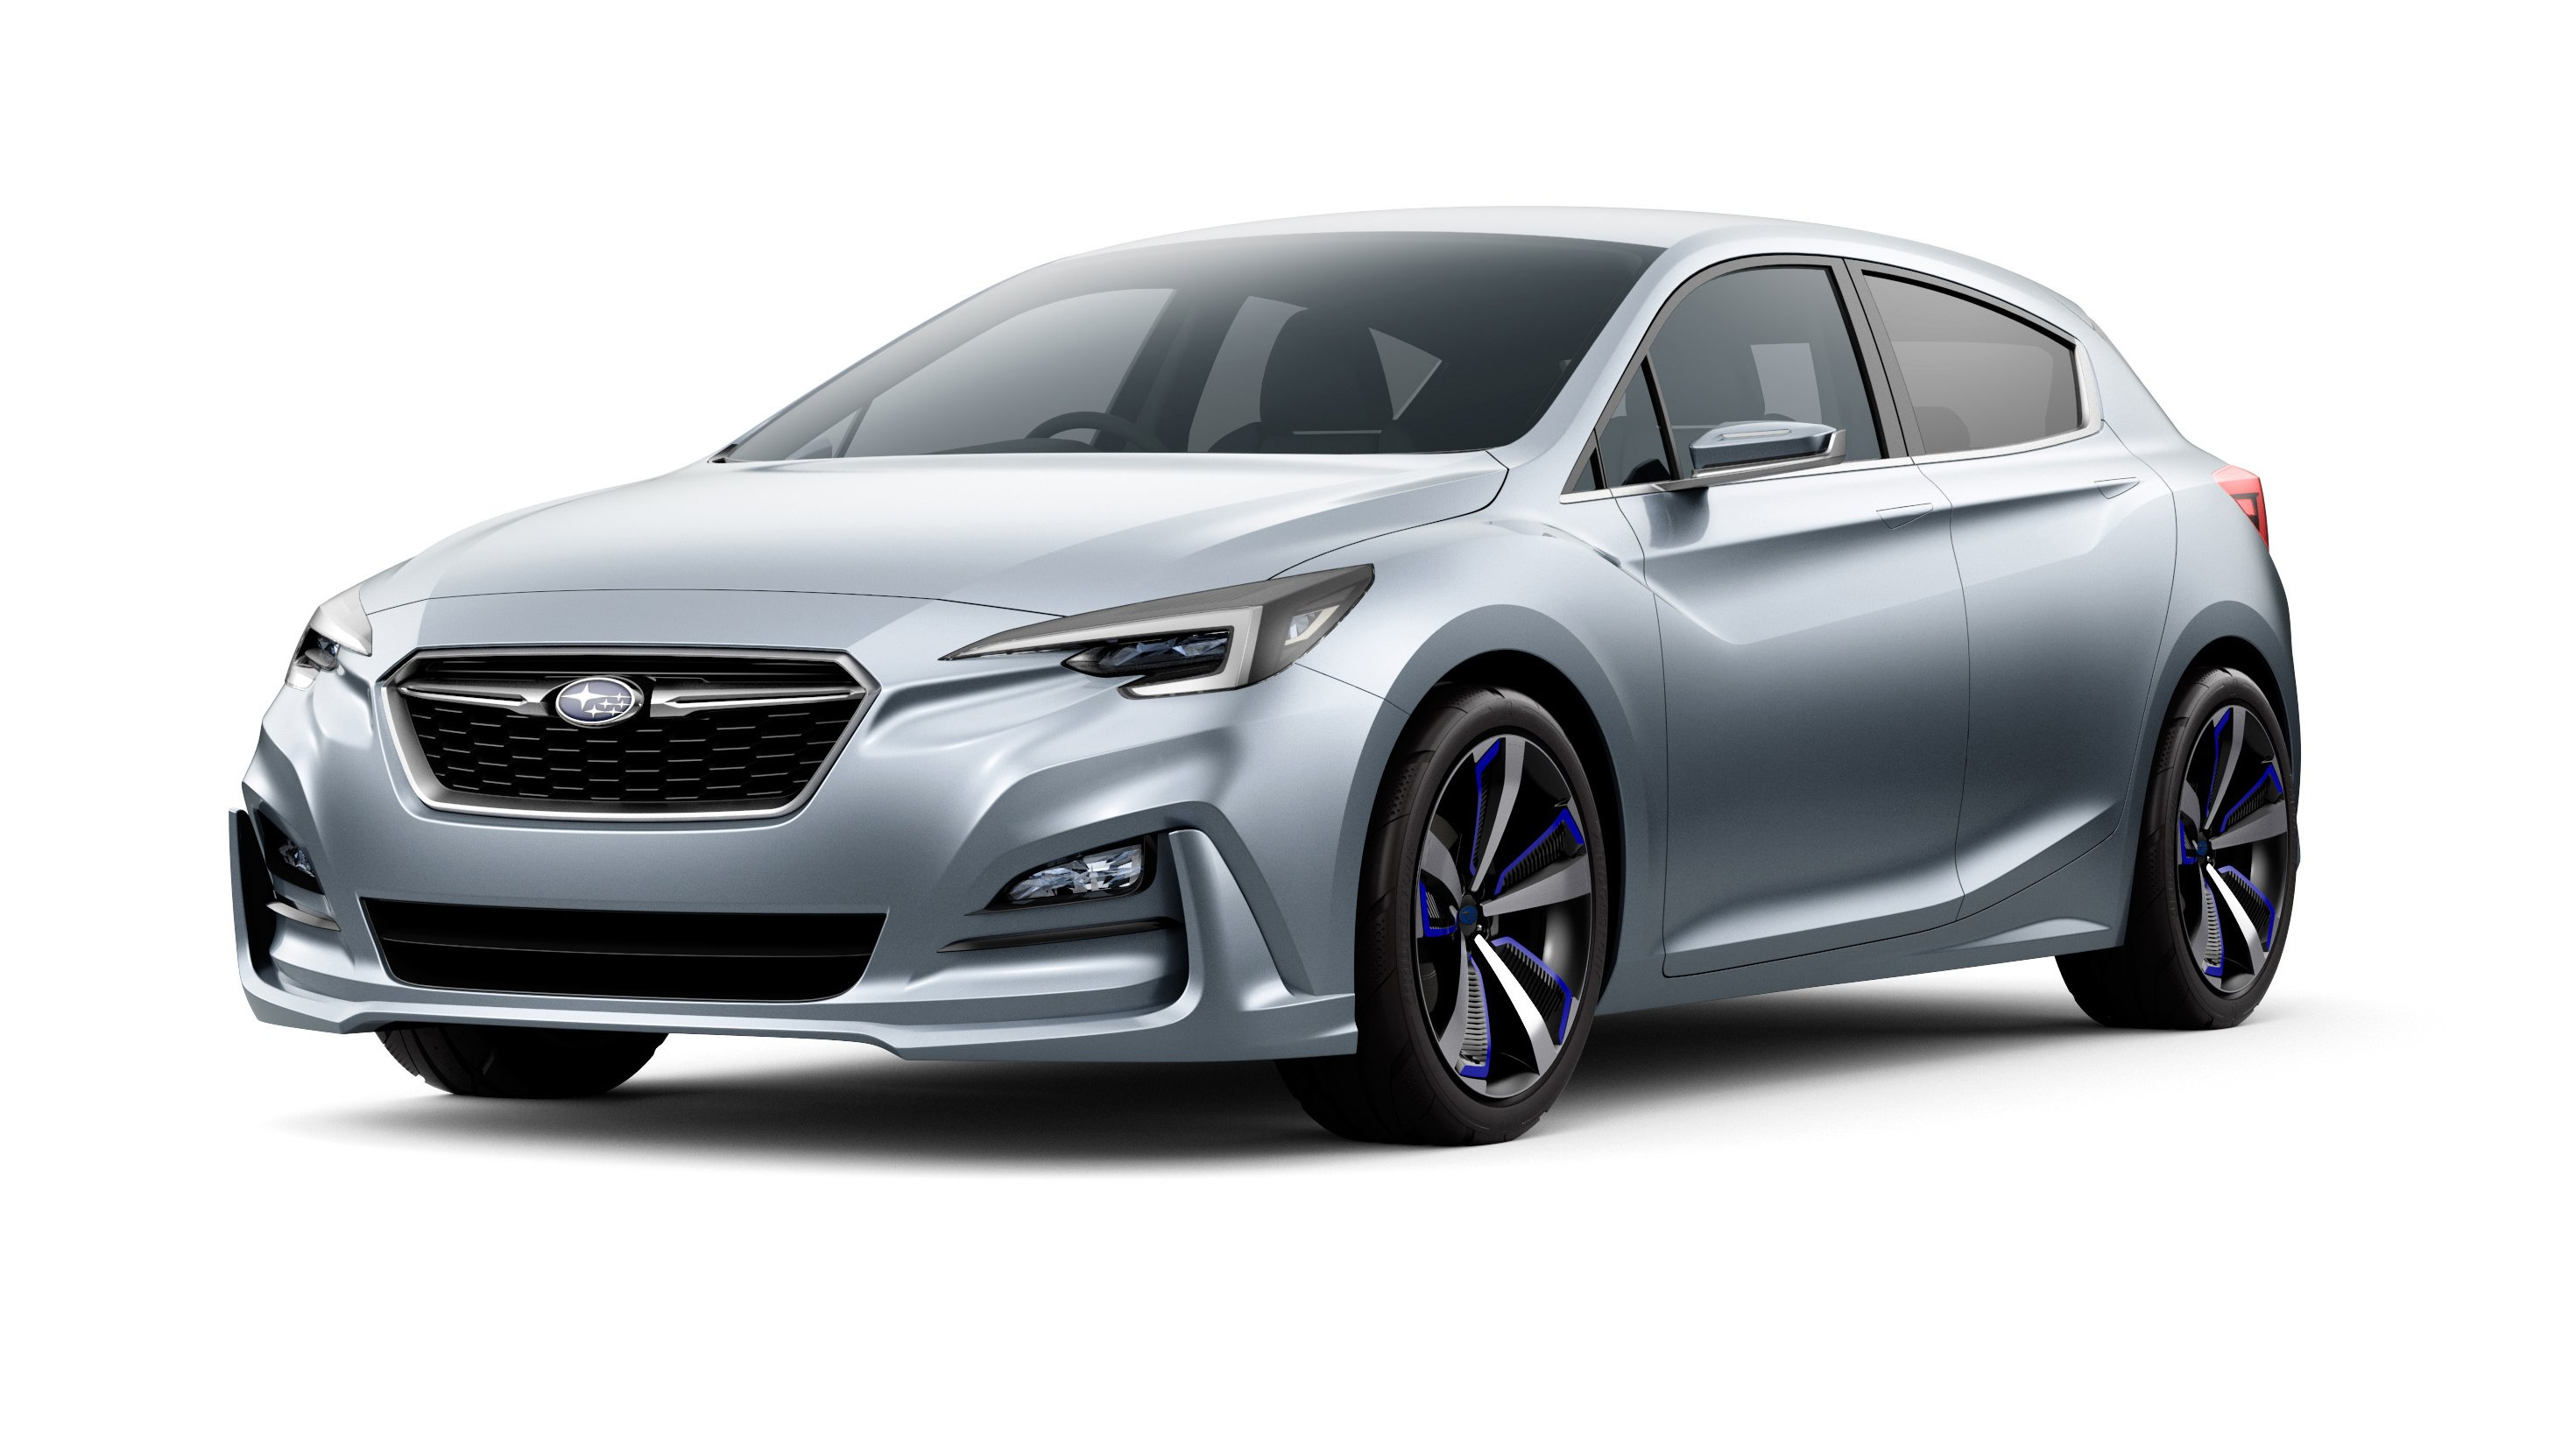 33 A 2020 Subaru Impreza Redesign and Review